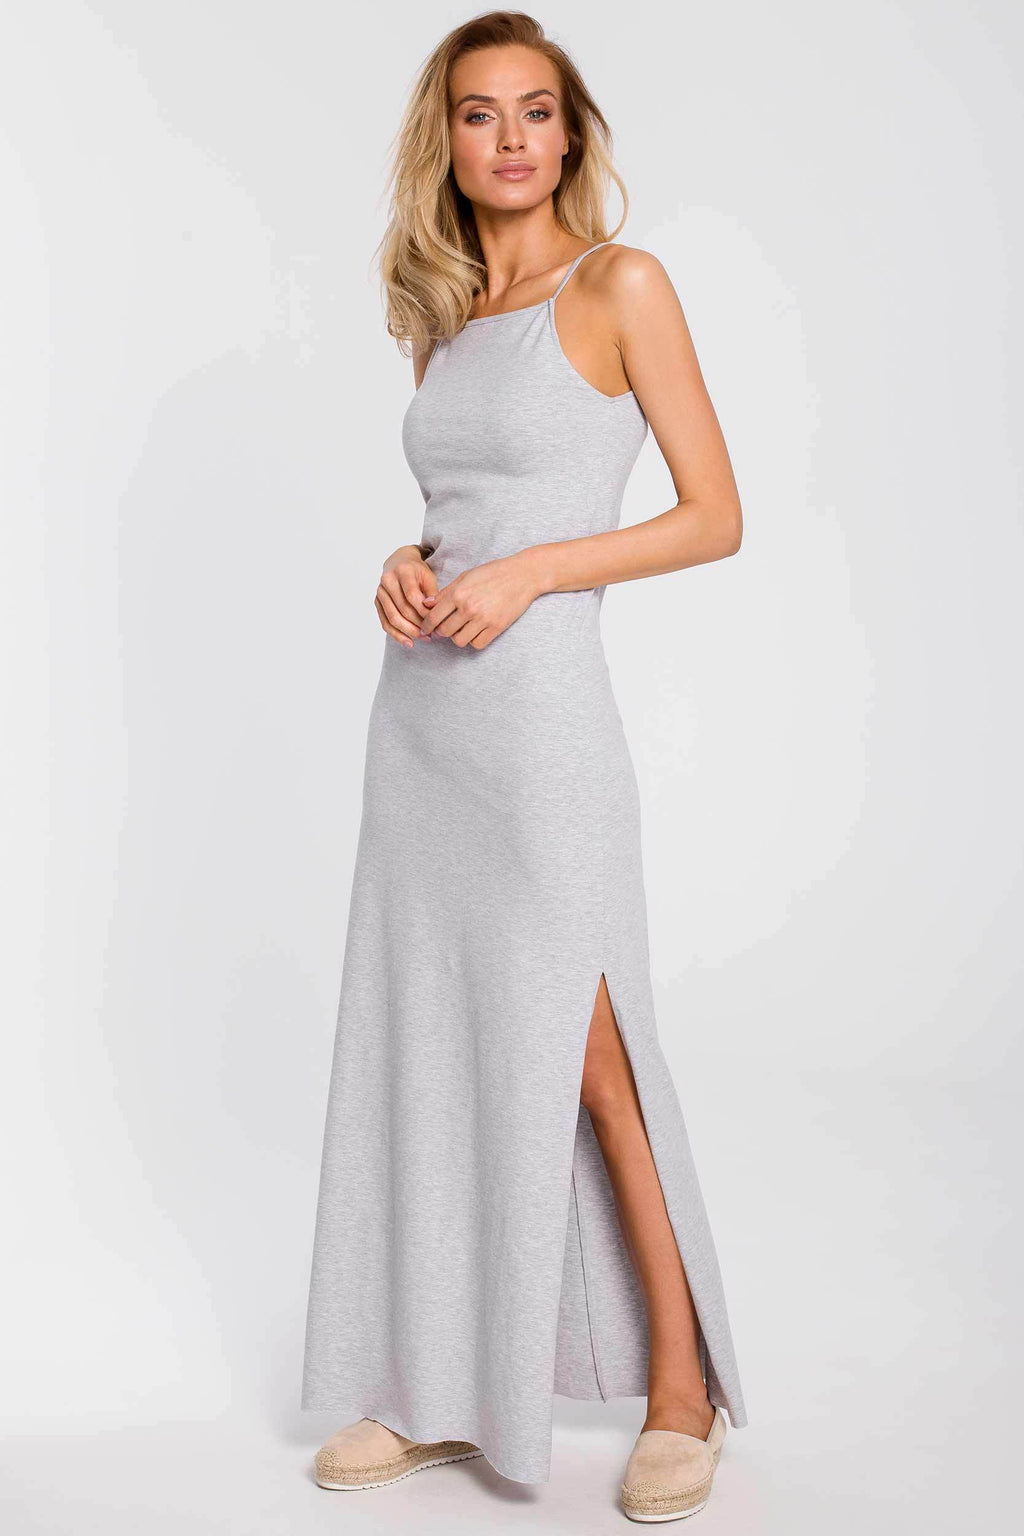 Maxi Grey Cotton Dress With Spaghetti Straps And A Side Slit